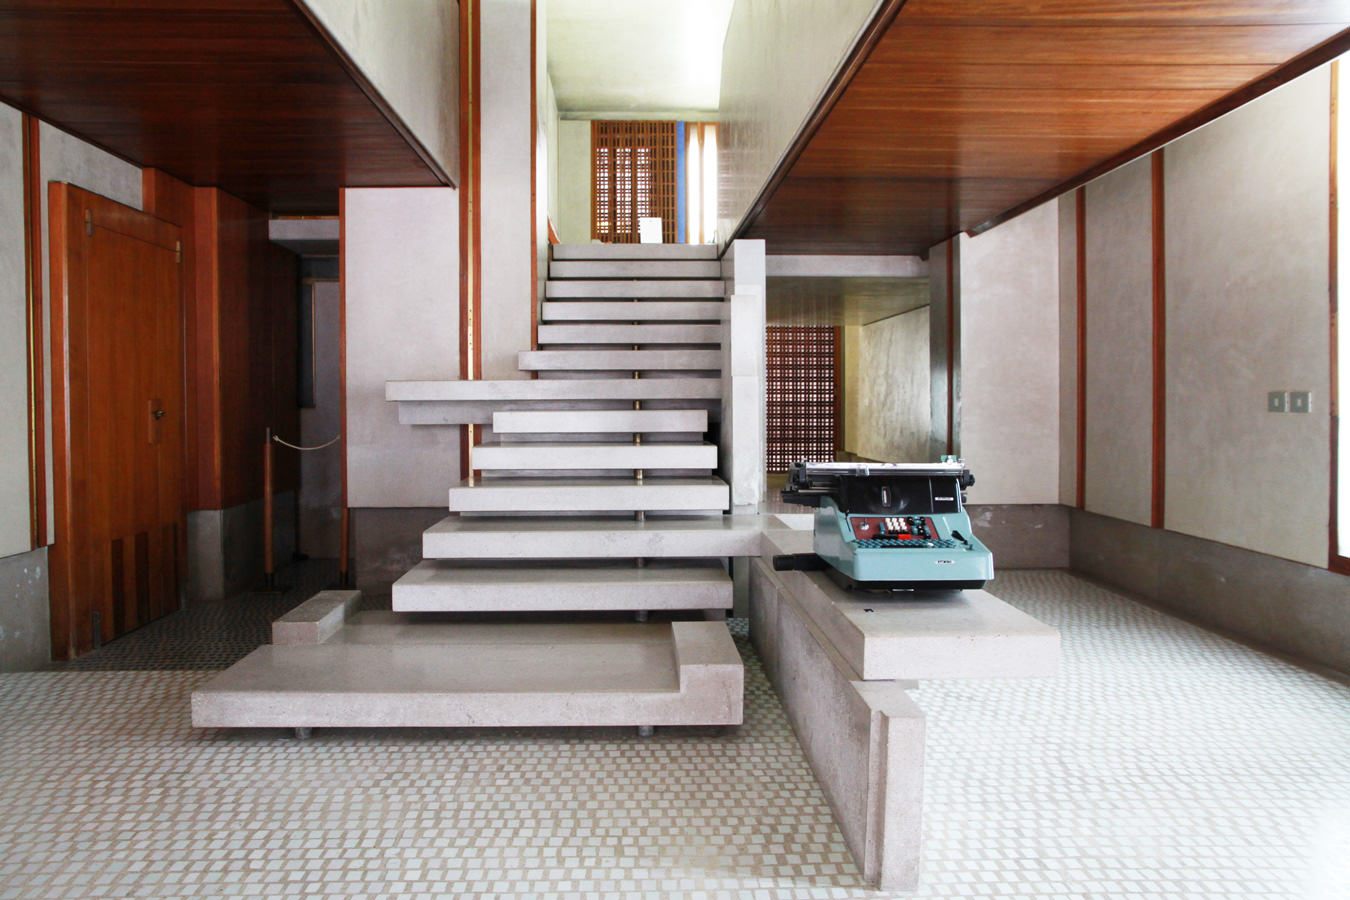 House Design Ideas Carlo Scarpa An Italian Master Archiobjects